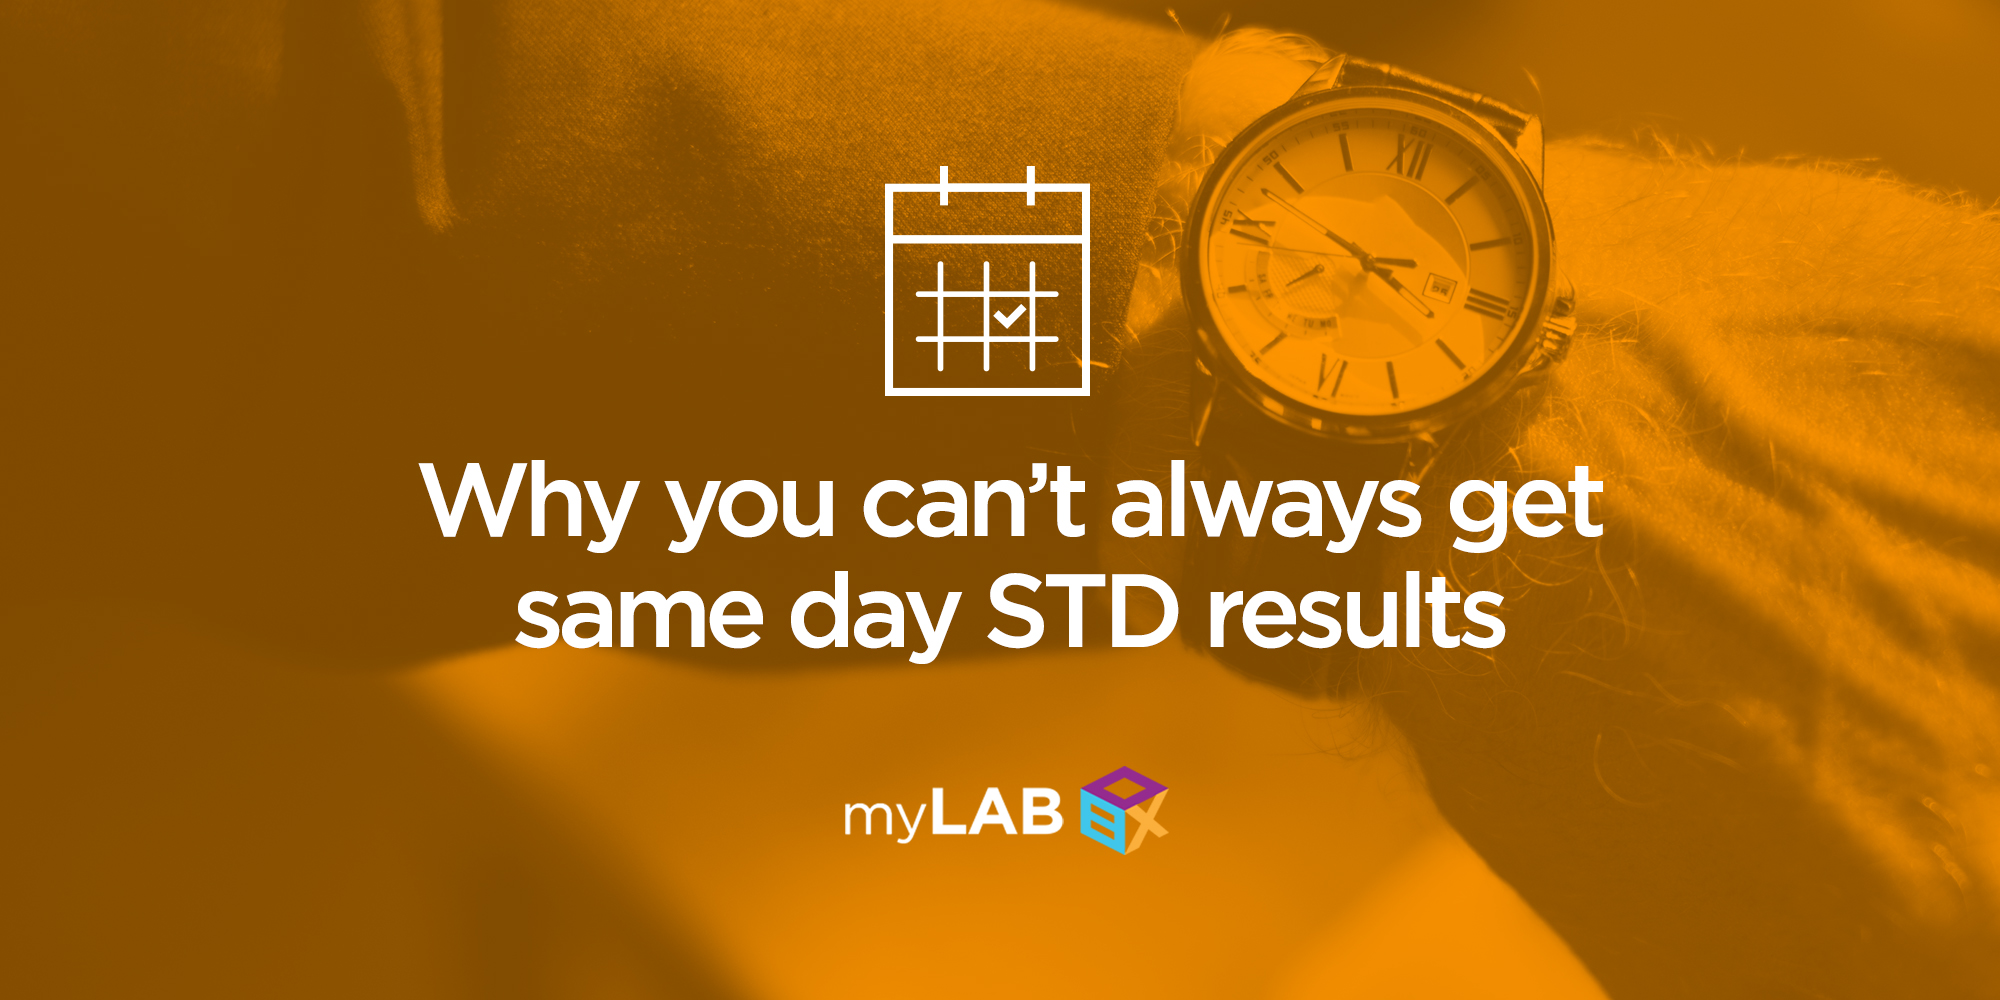 Why You Can't Always Get Same Day STD Results